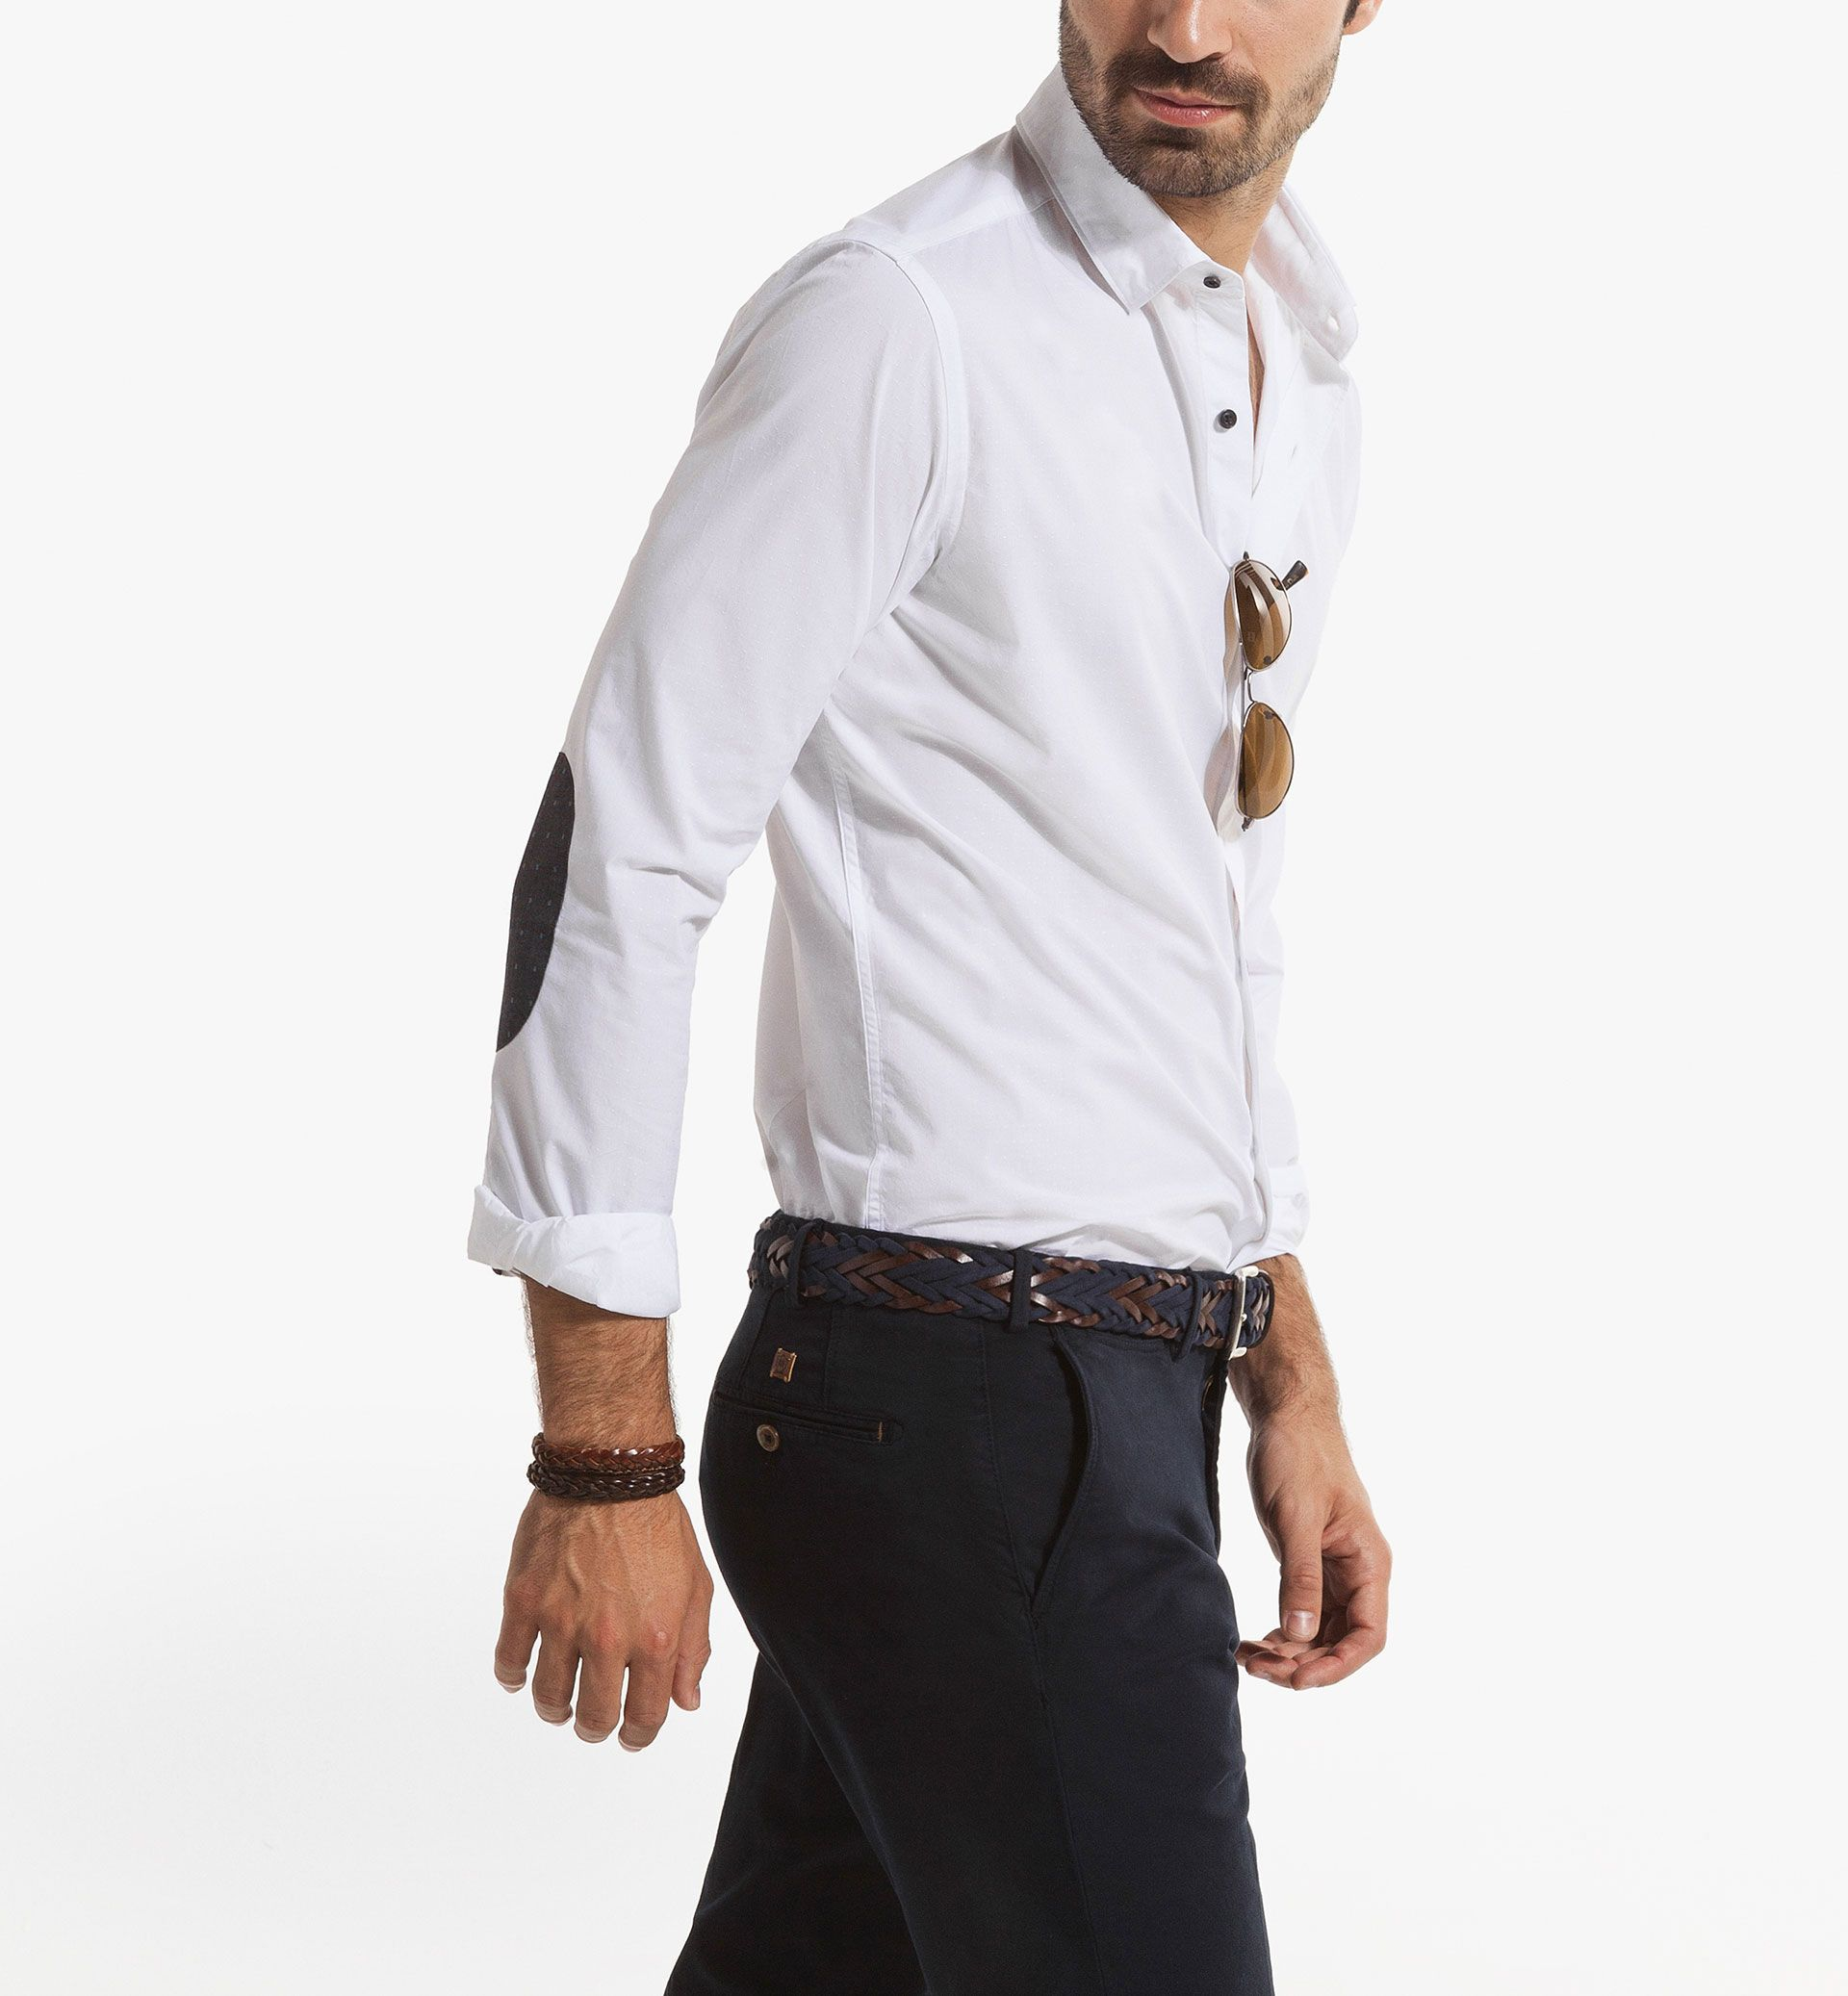 Slim Fit Structured Shirt With Elbow Patches Men 39 S